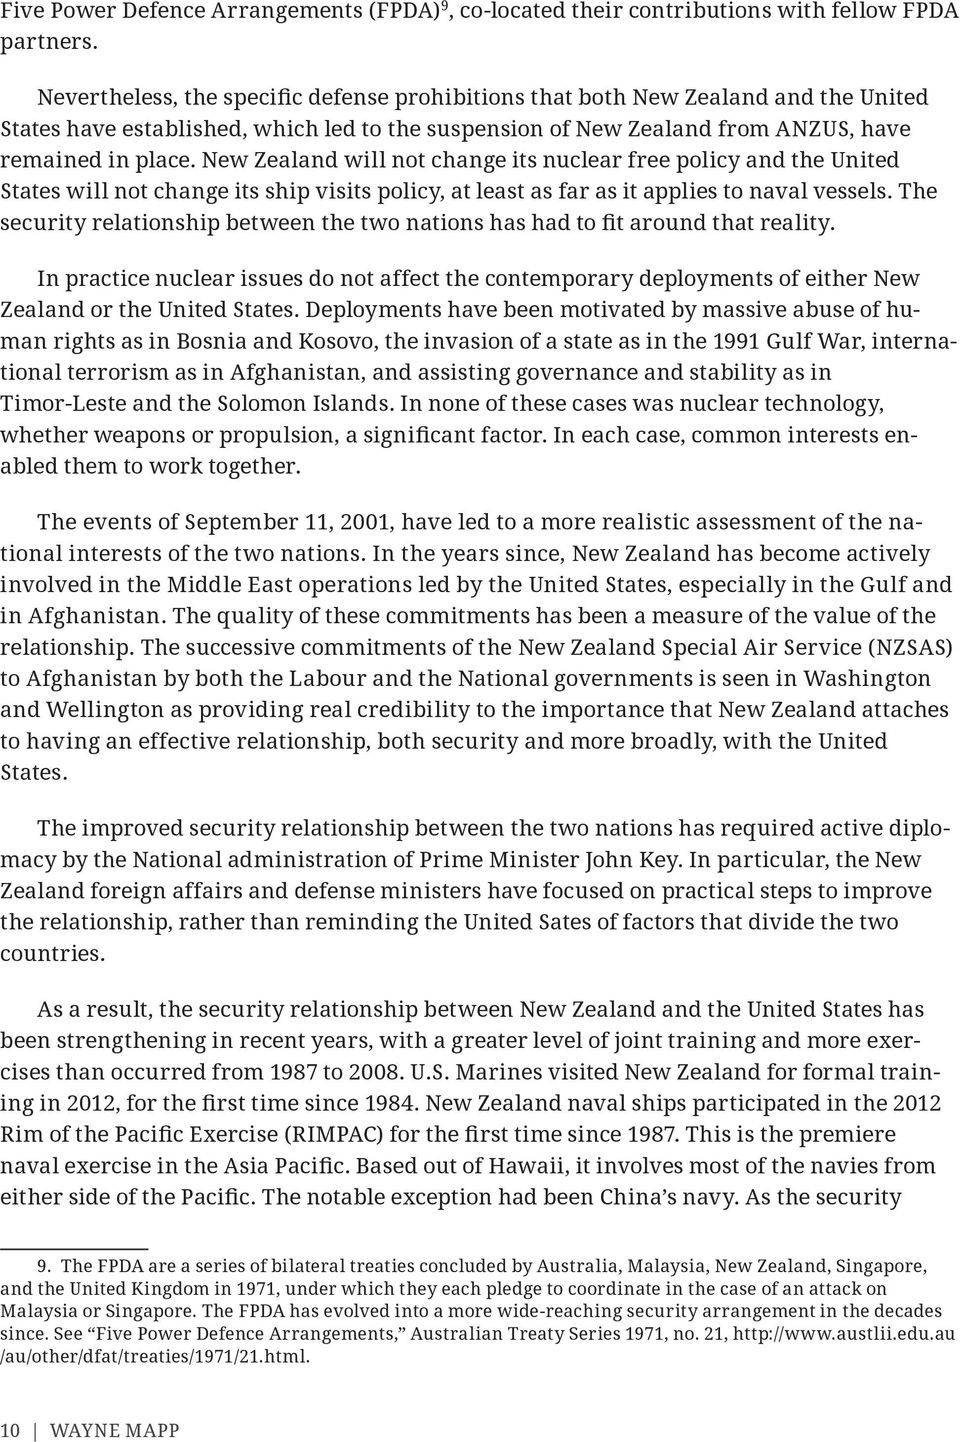 New Zealand will not change its nuclear free policy and the United States will not change its ship visits policy, at least as far as it applies to naval vessels.